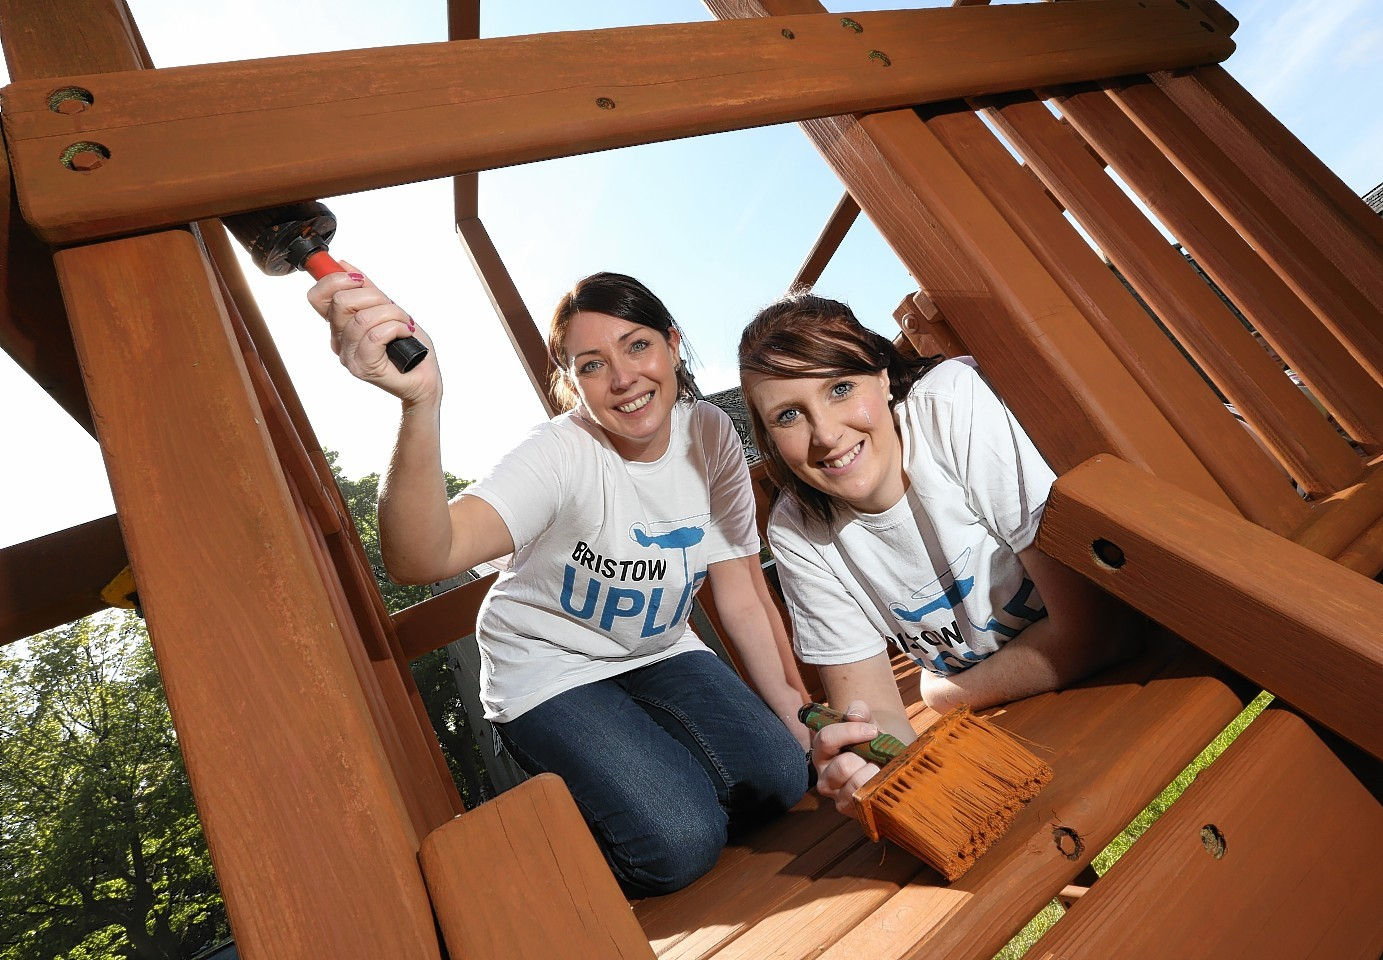 From left to right: Samantha Lewis and Lisa Clyne enjoy a day of volunteering at Aberlour's family service centre in Old Aberdeen